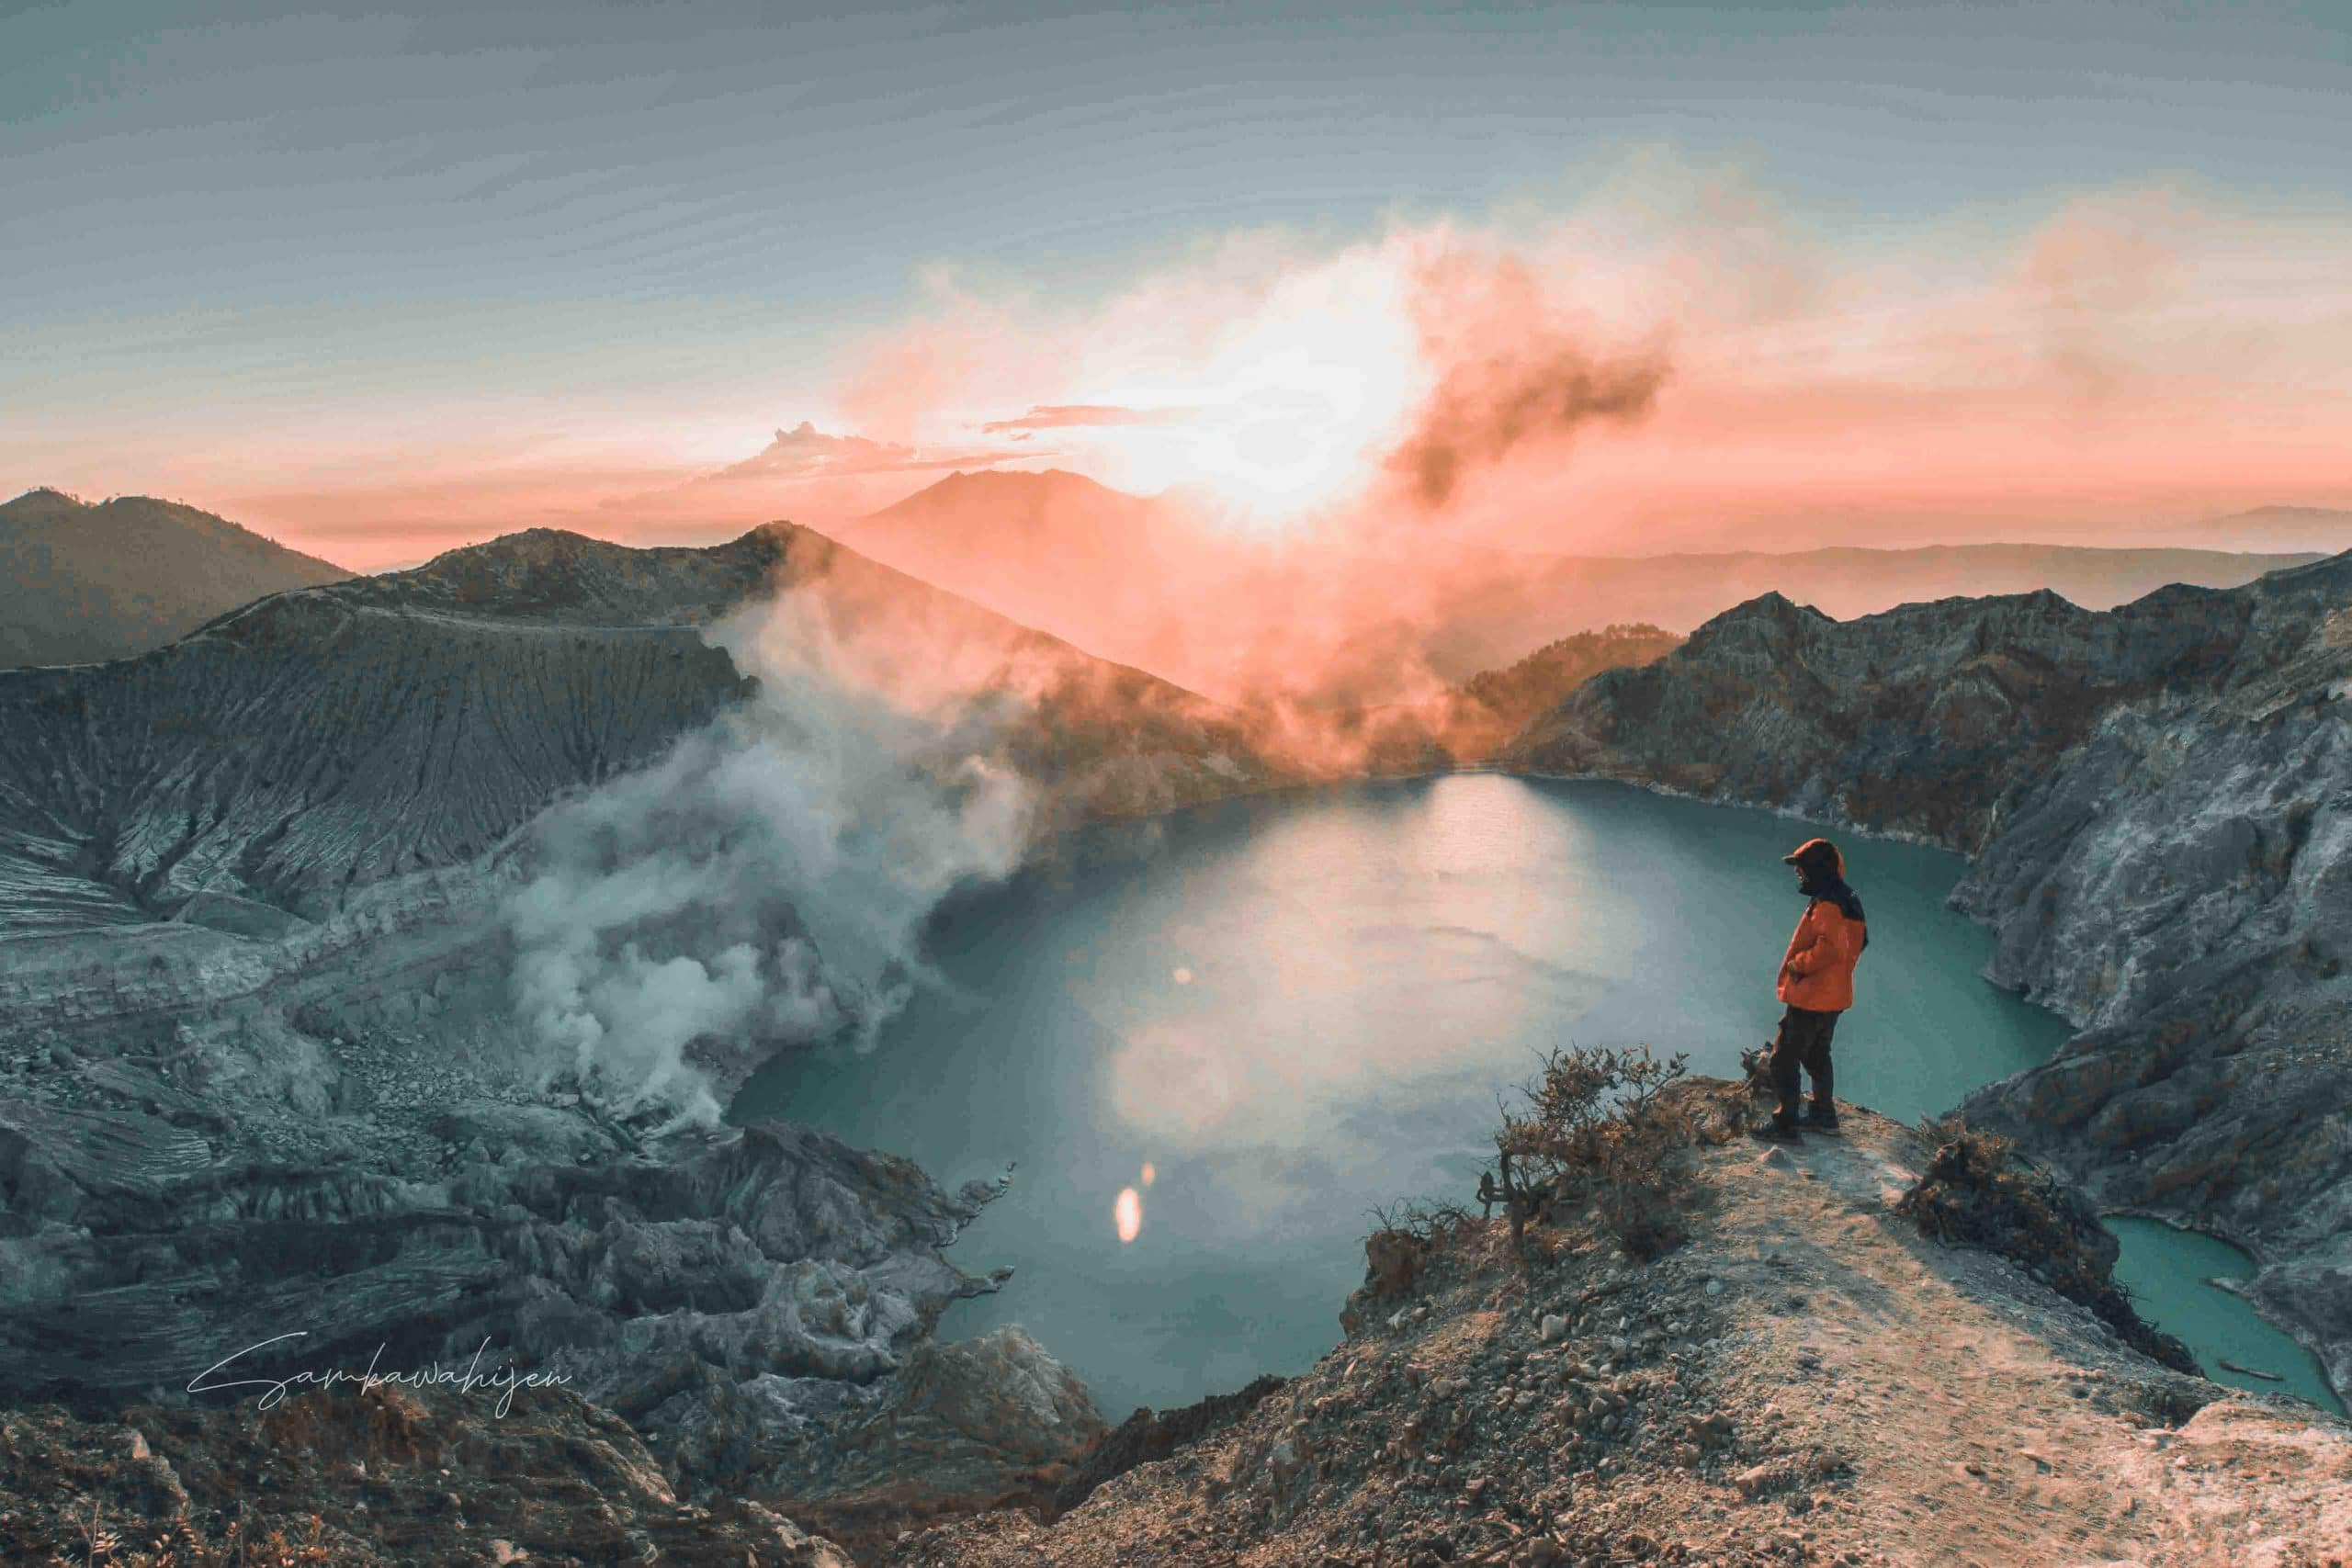 Ijen crater the largest acidic lake in the world.